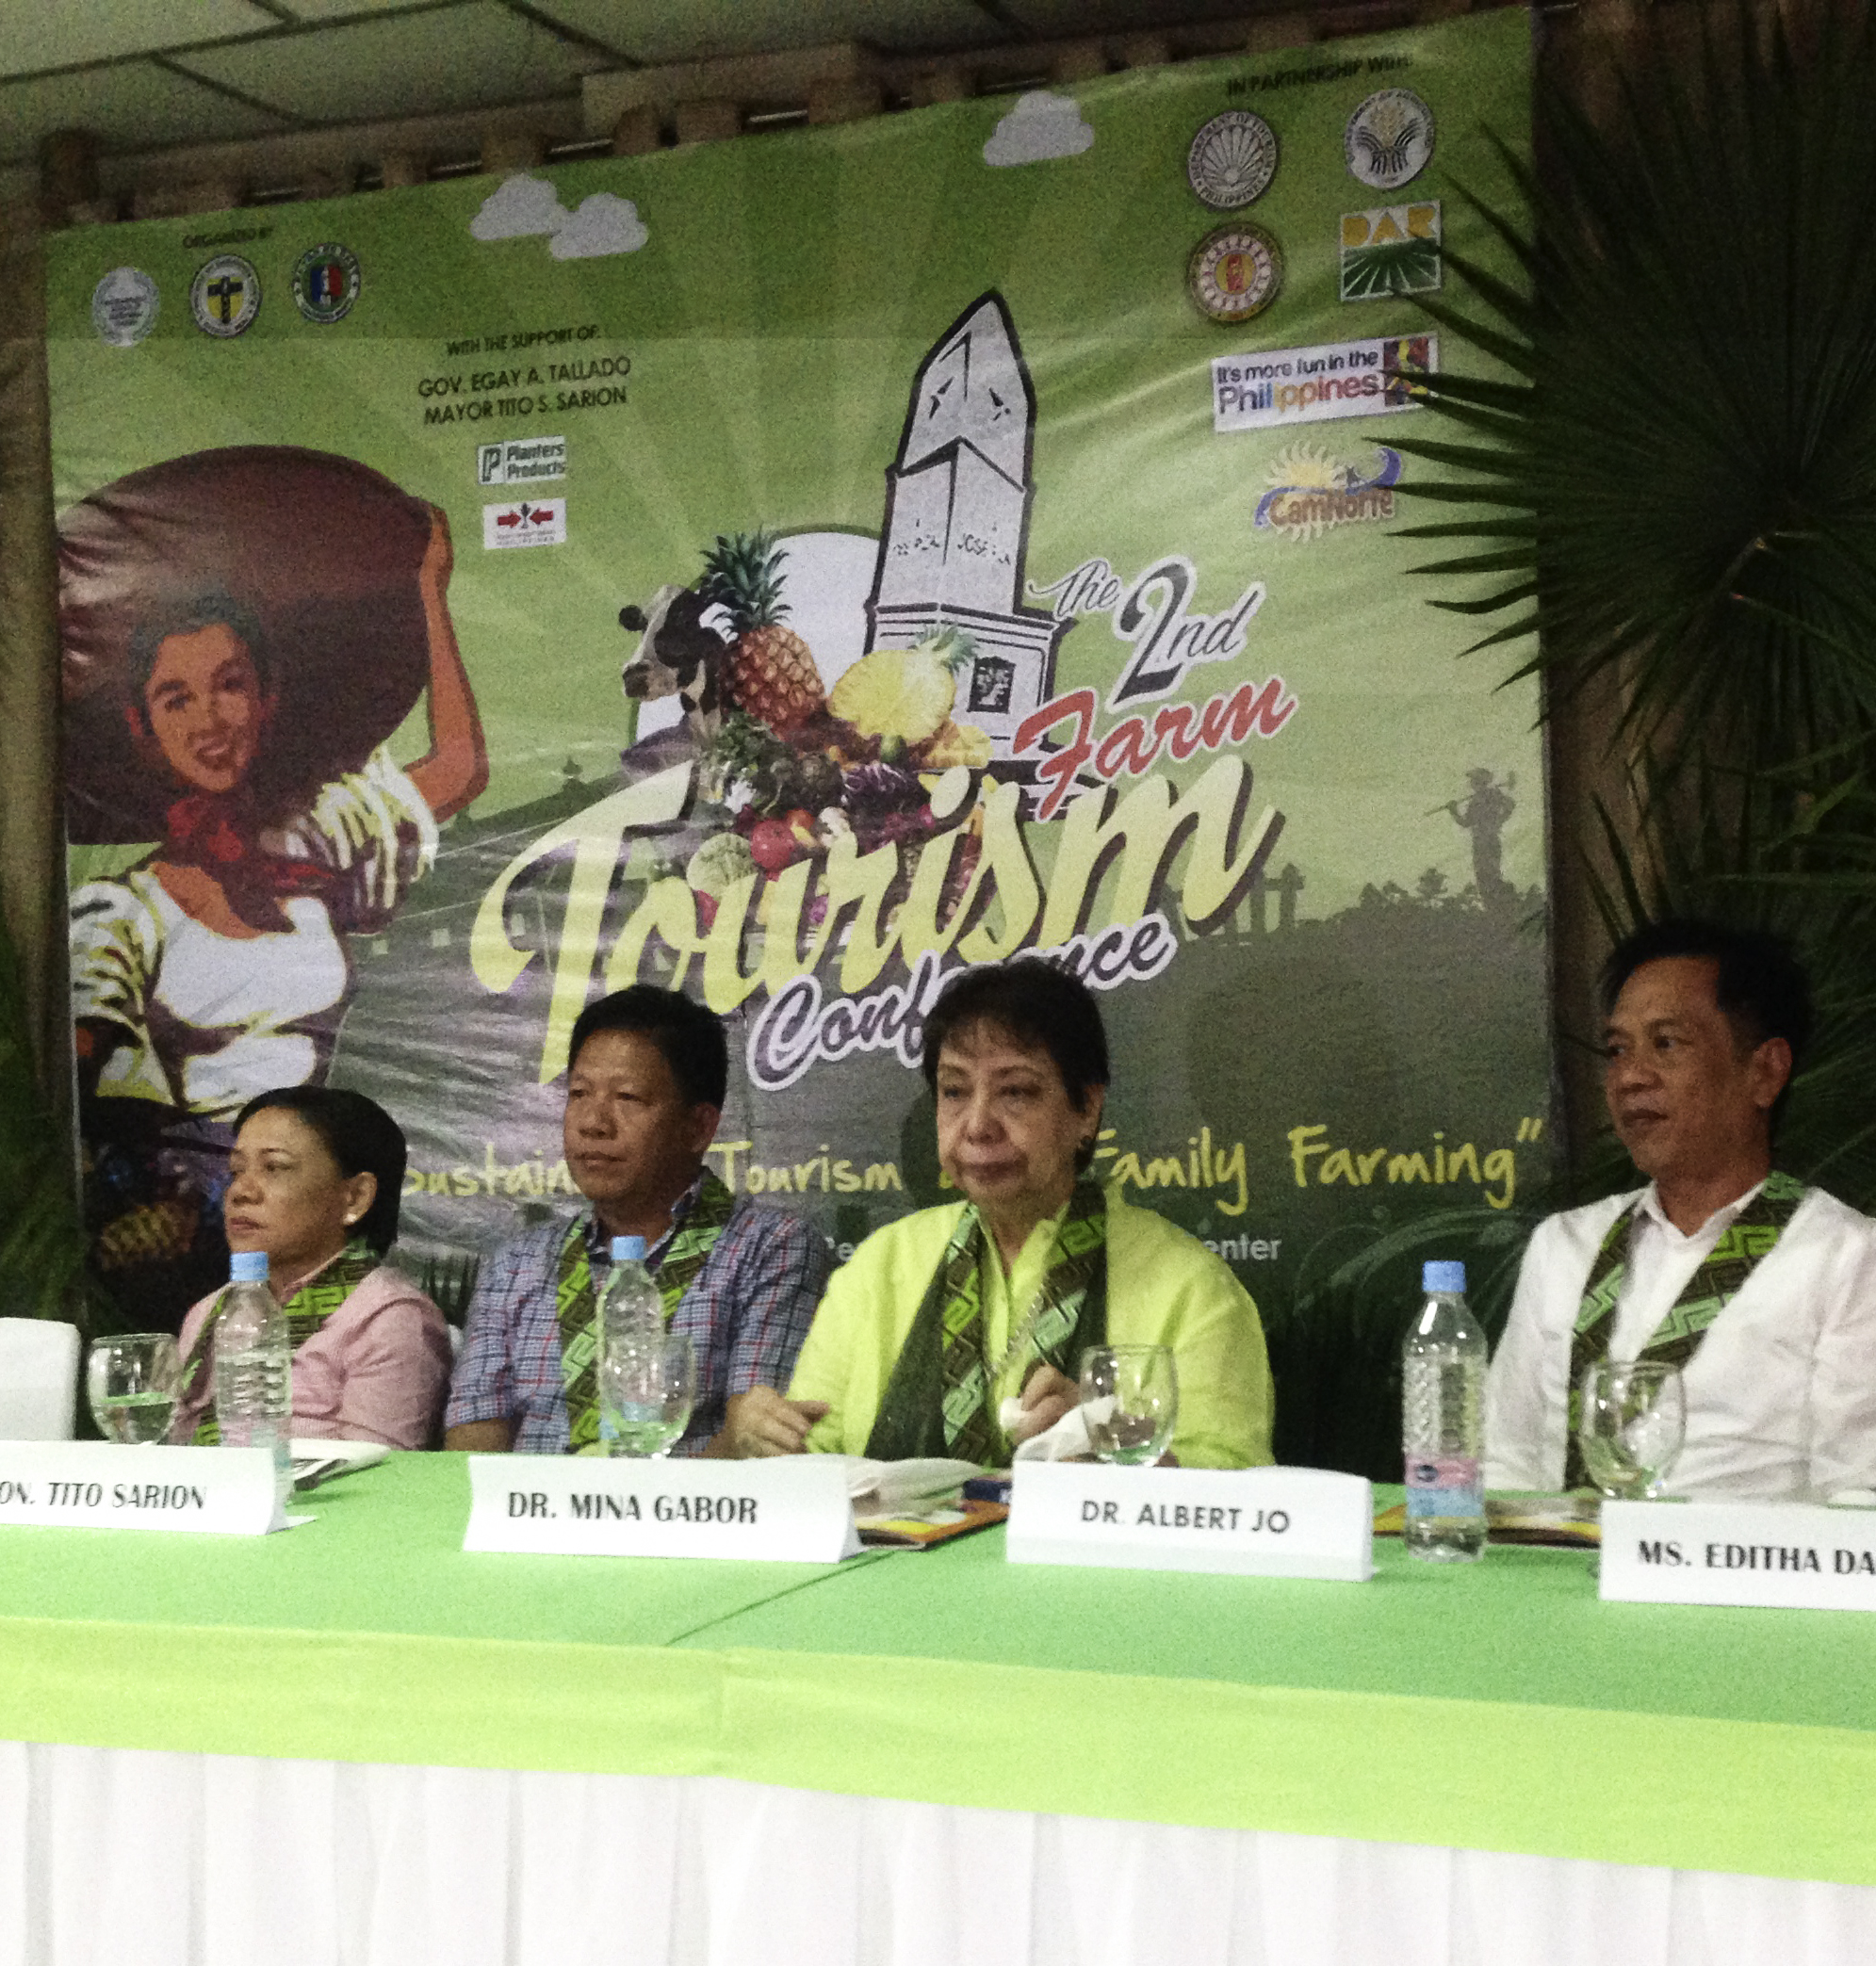 2nd Farm Tourism Conference